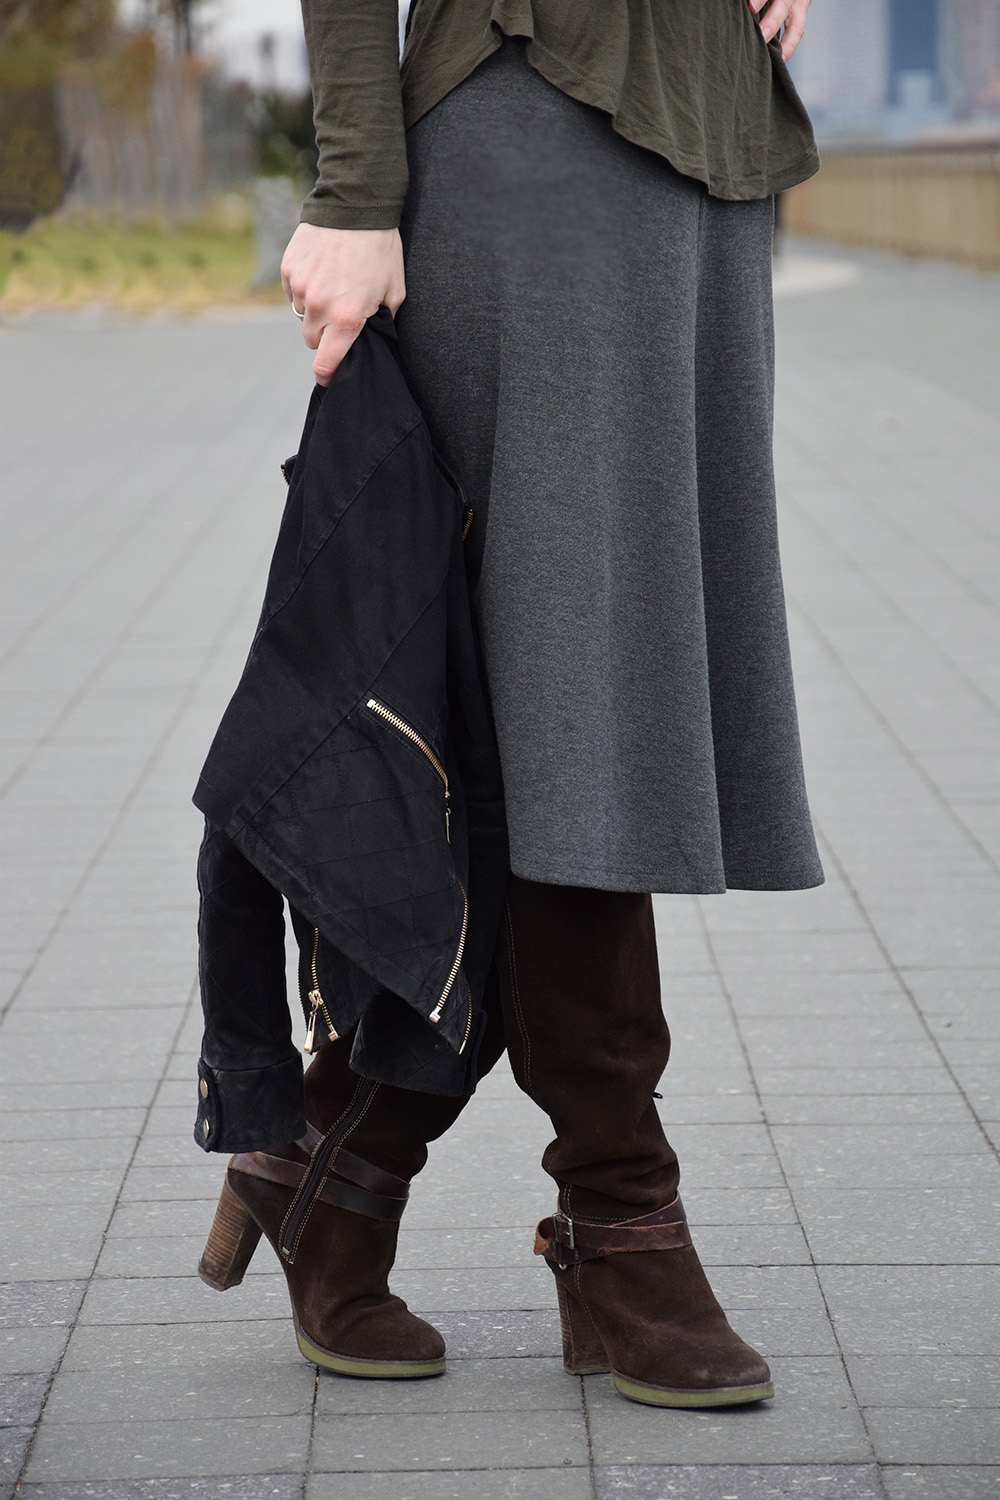 www.advance-your-style.de, Modeblog, advanceyourstyle, Berlin, Fashionblog, High Waisted Midi-Rock, Modetrend, Fashiontipp, Outfit, New York City, braune Wildleder Stiefel